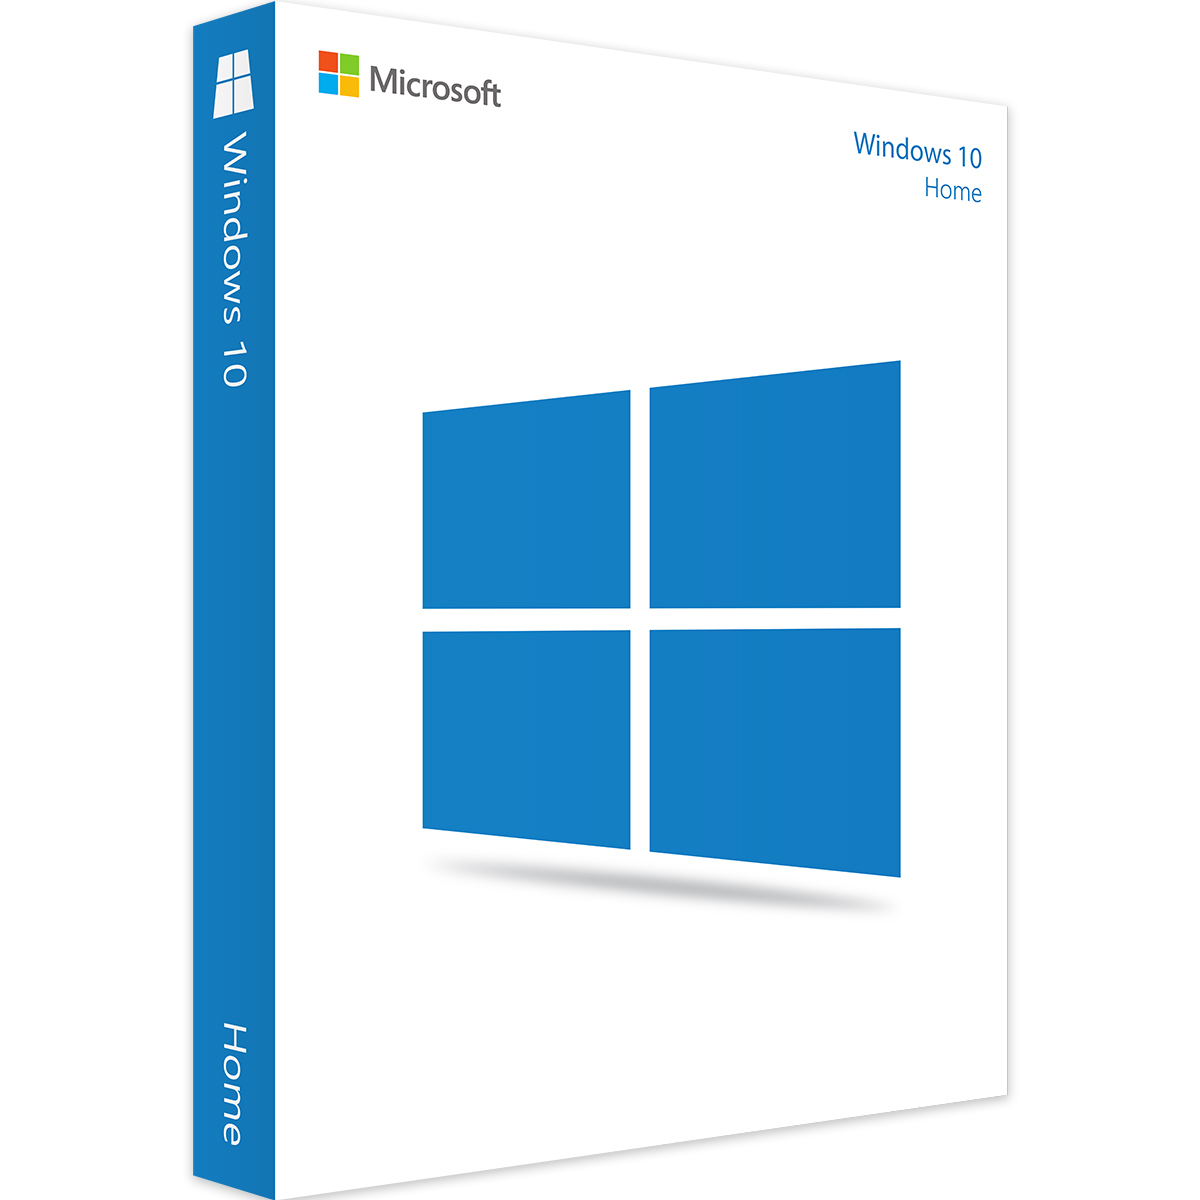 Windows 10 Home Iclick Solutions